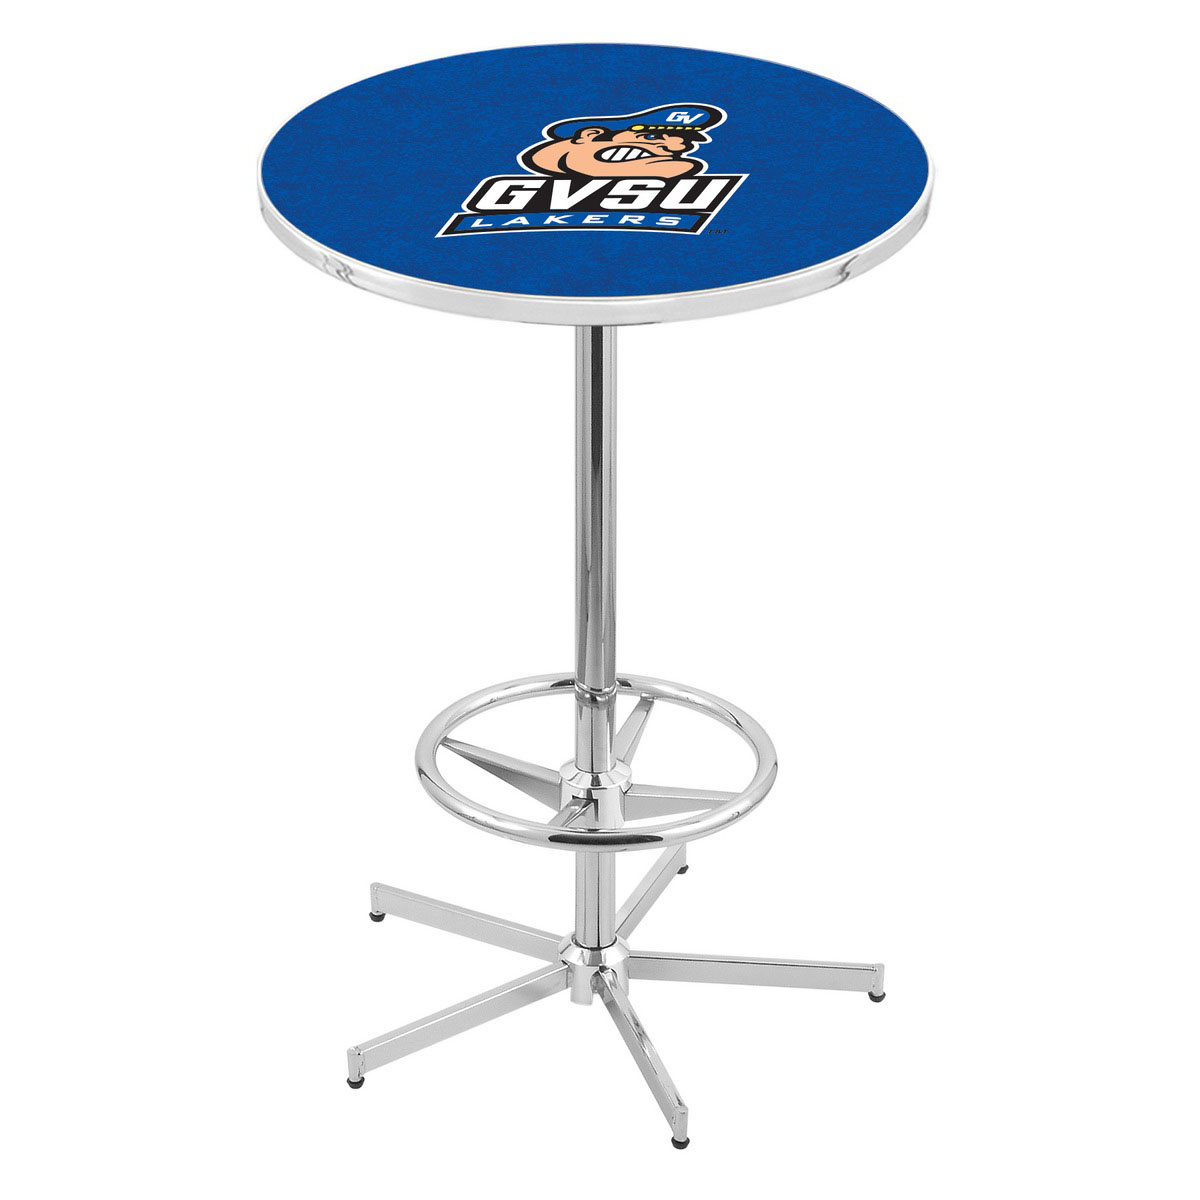 Optimal Chrome Grand Valley State Pub Table Product Photo